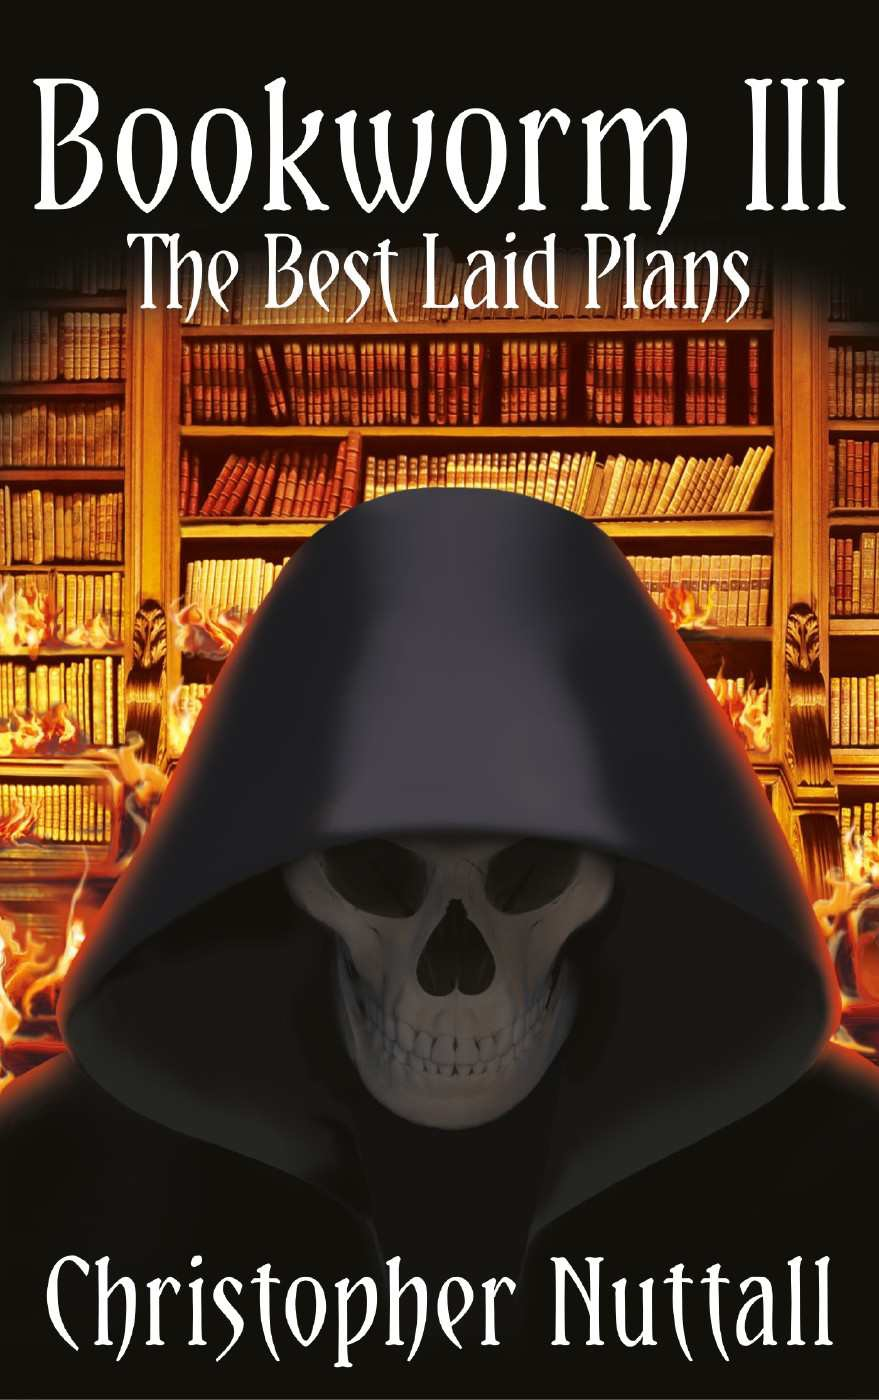 The Best Laid Plans – I do not really like the direction this book took.